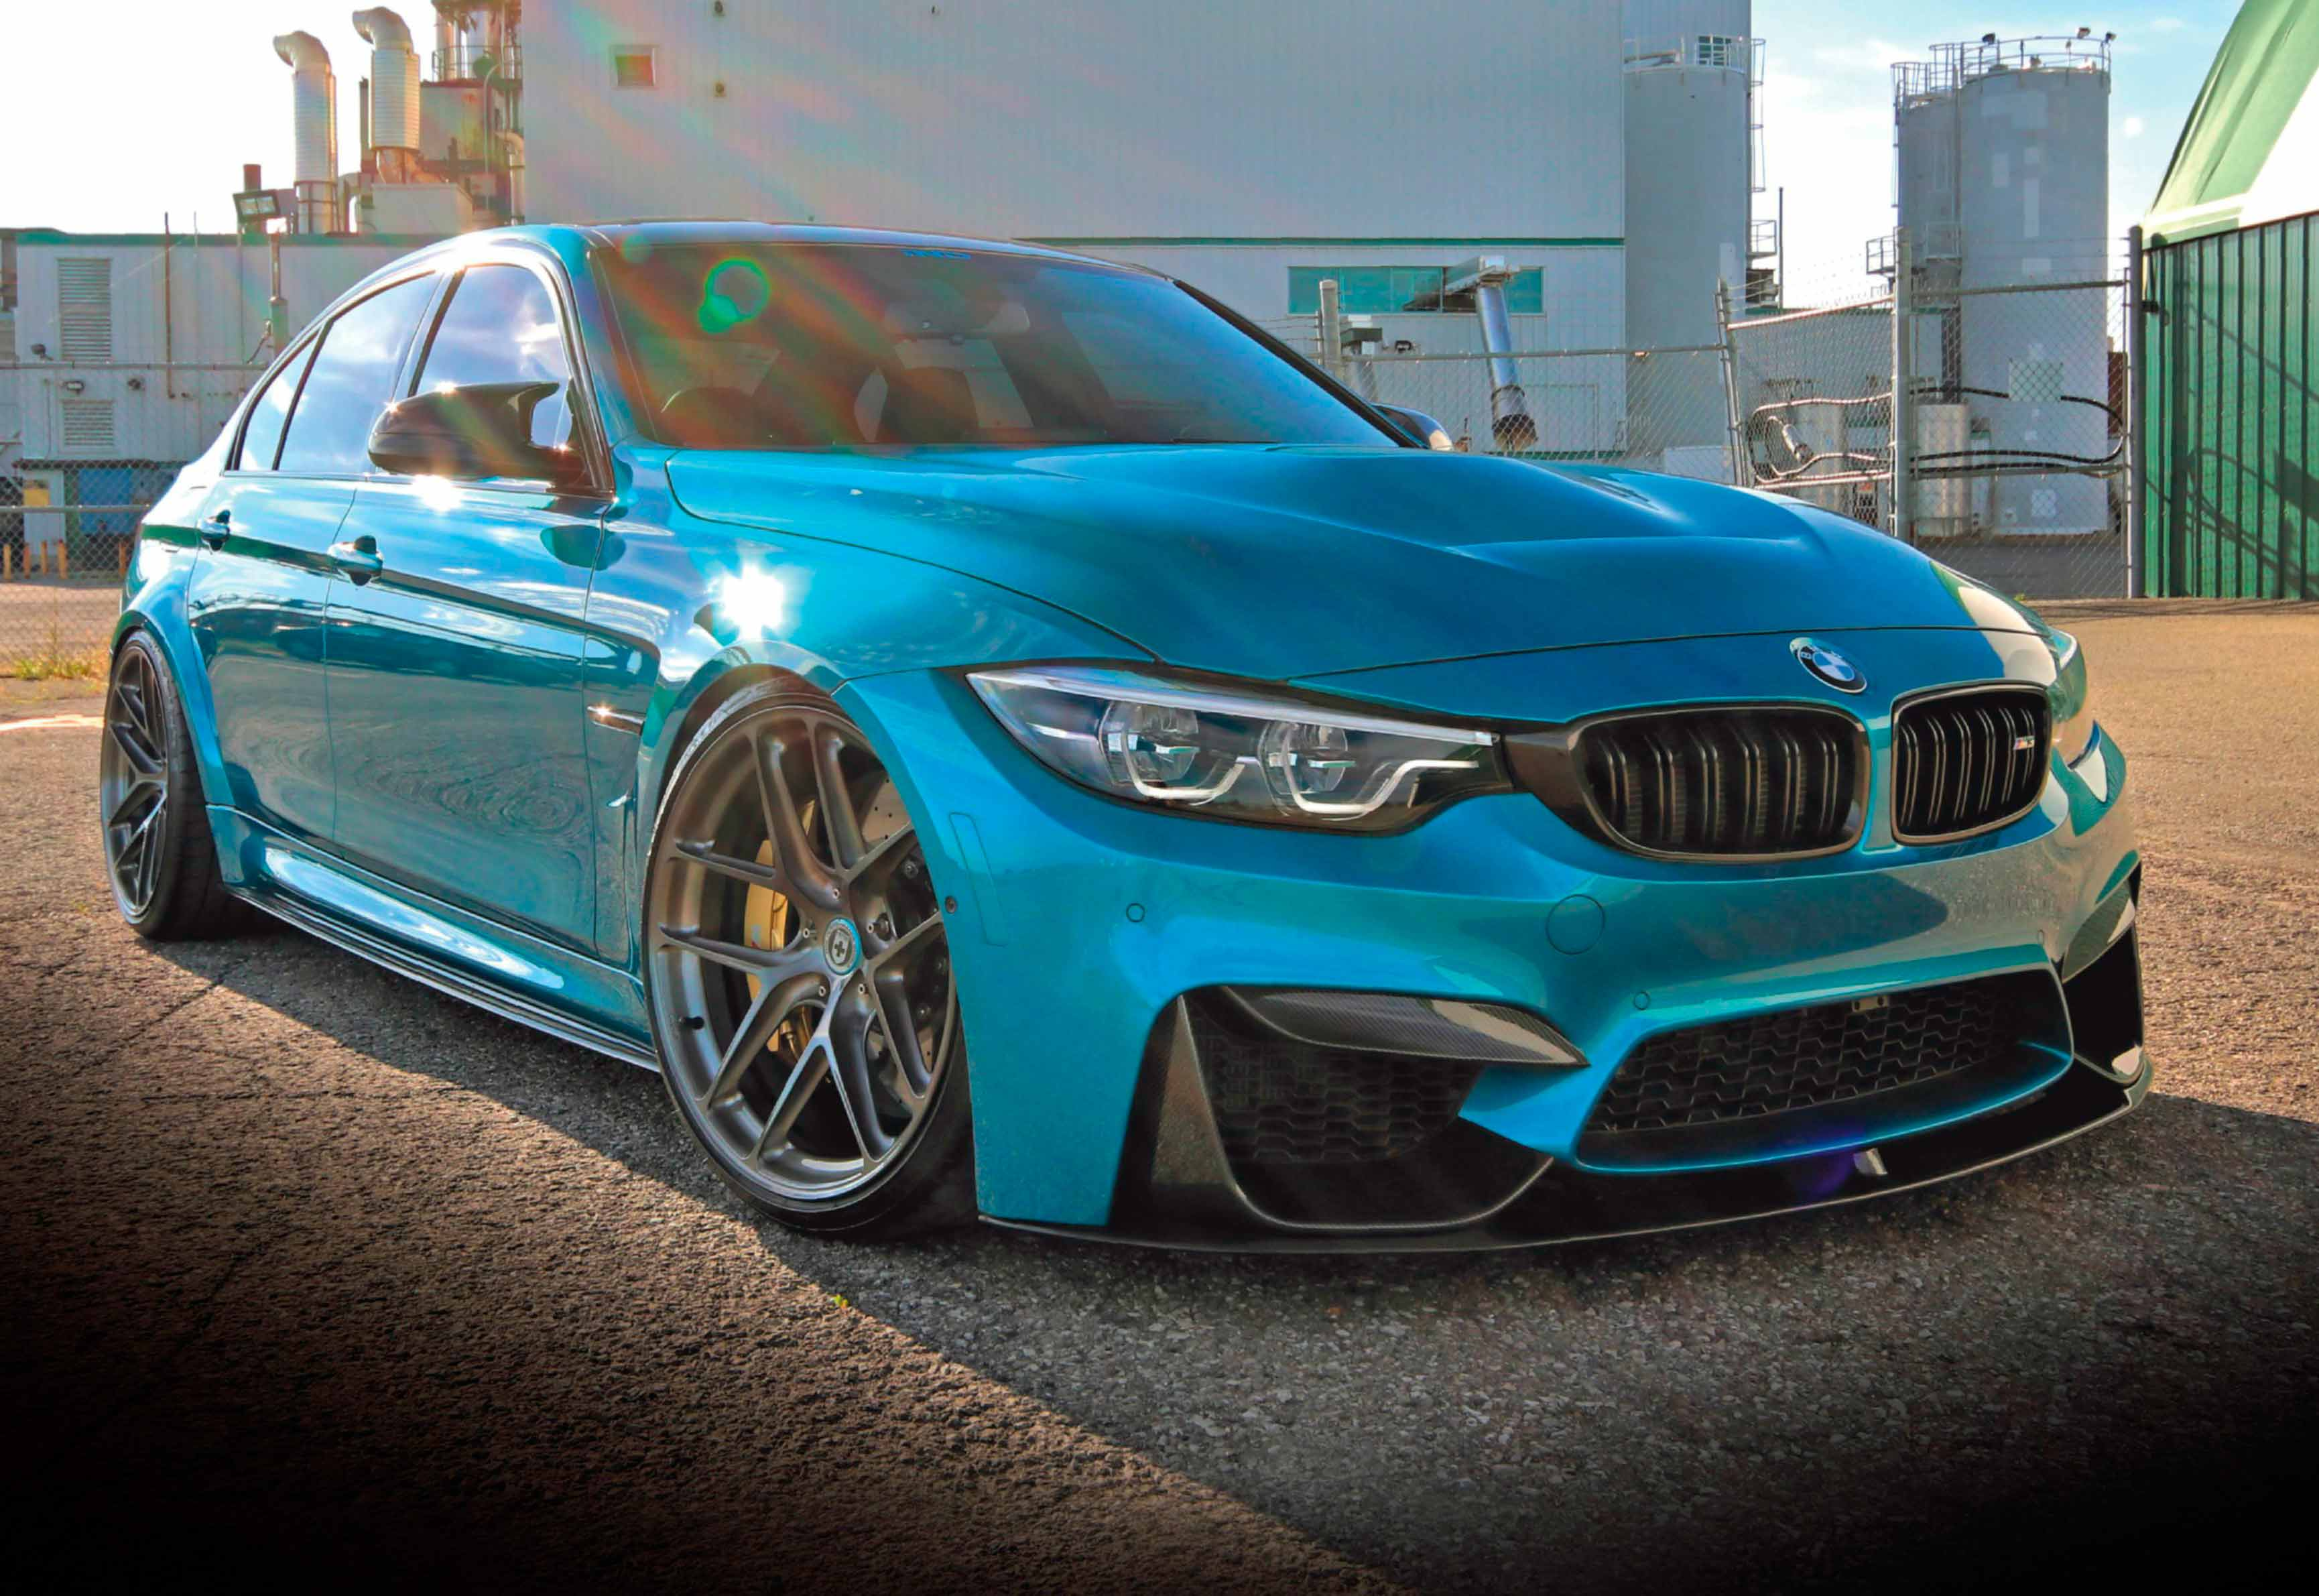 Styled and tuned 500bhp BMW M3 F80 - Drive-My Blogs - Drive